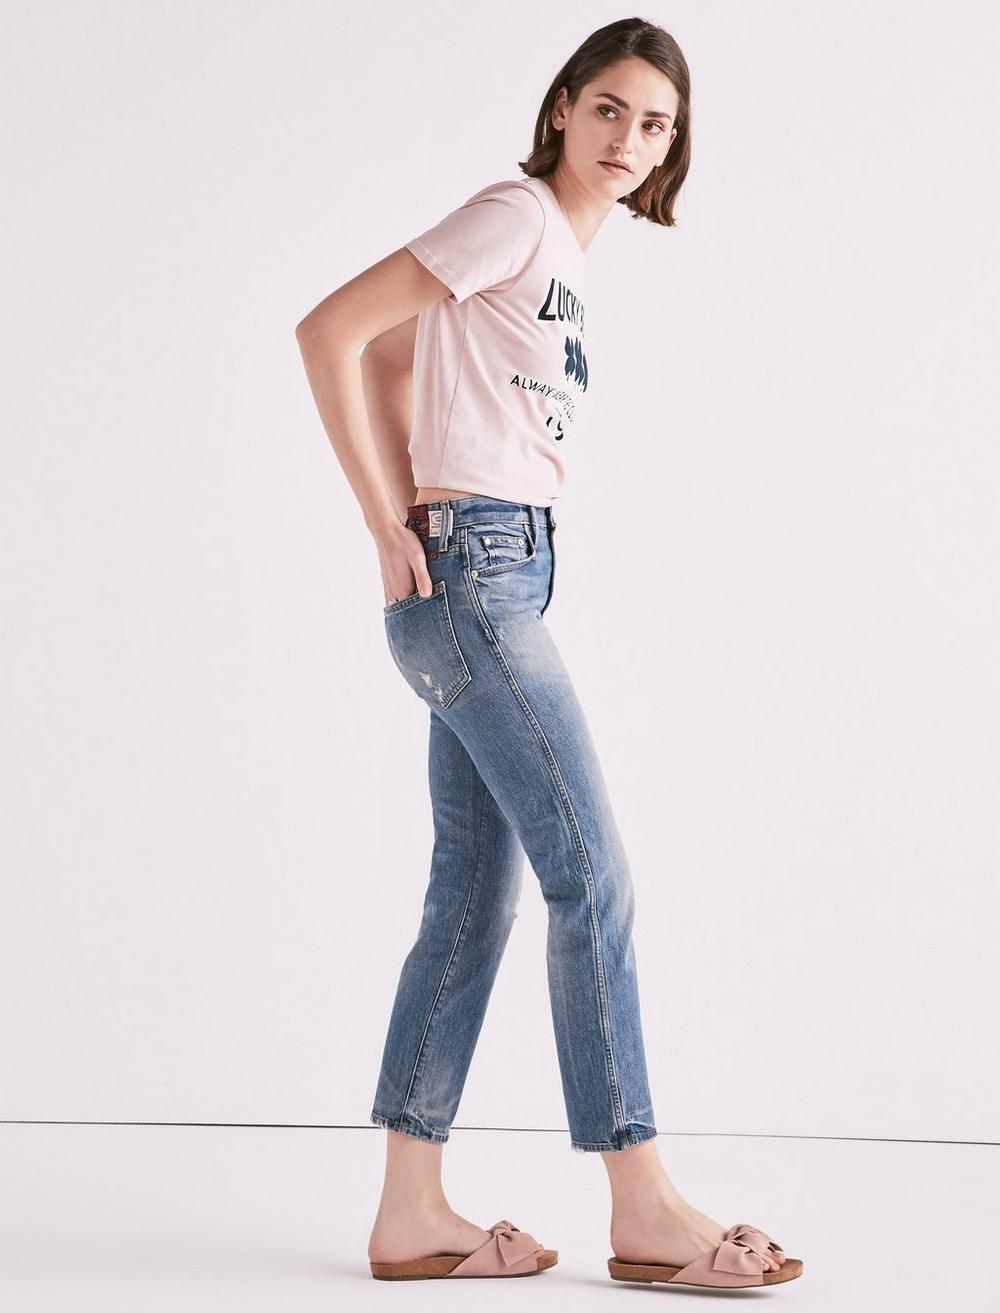 MADE IN L.A. LUCKY PINS HIGH RISE JEAN IN WILKINS, image 1